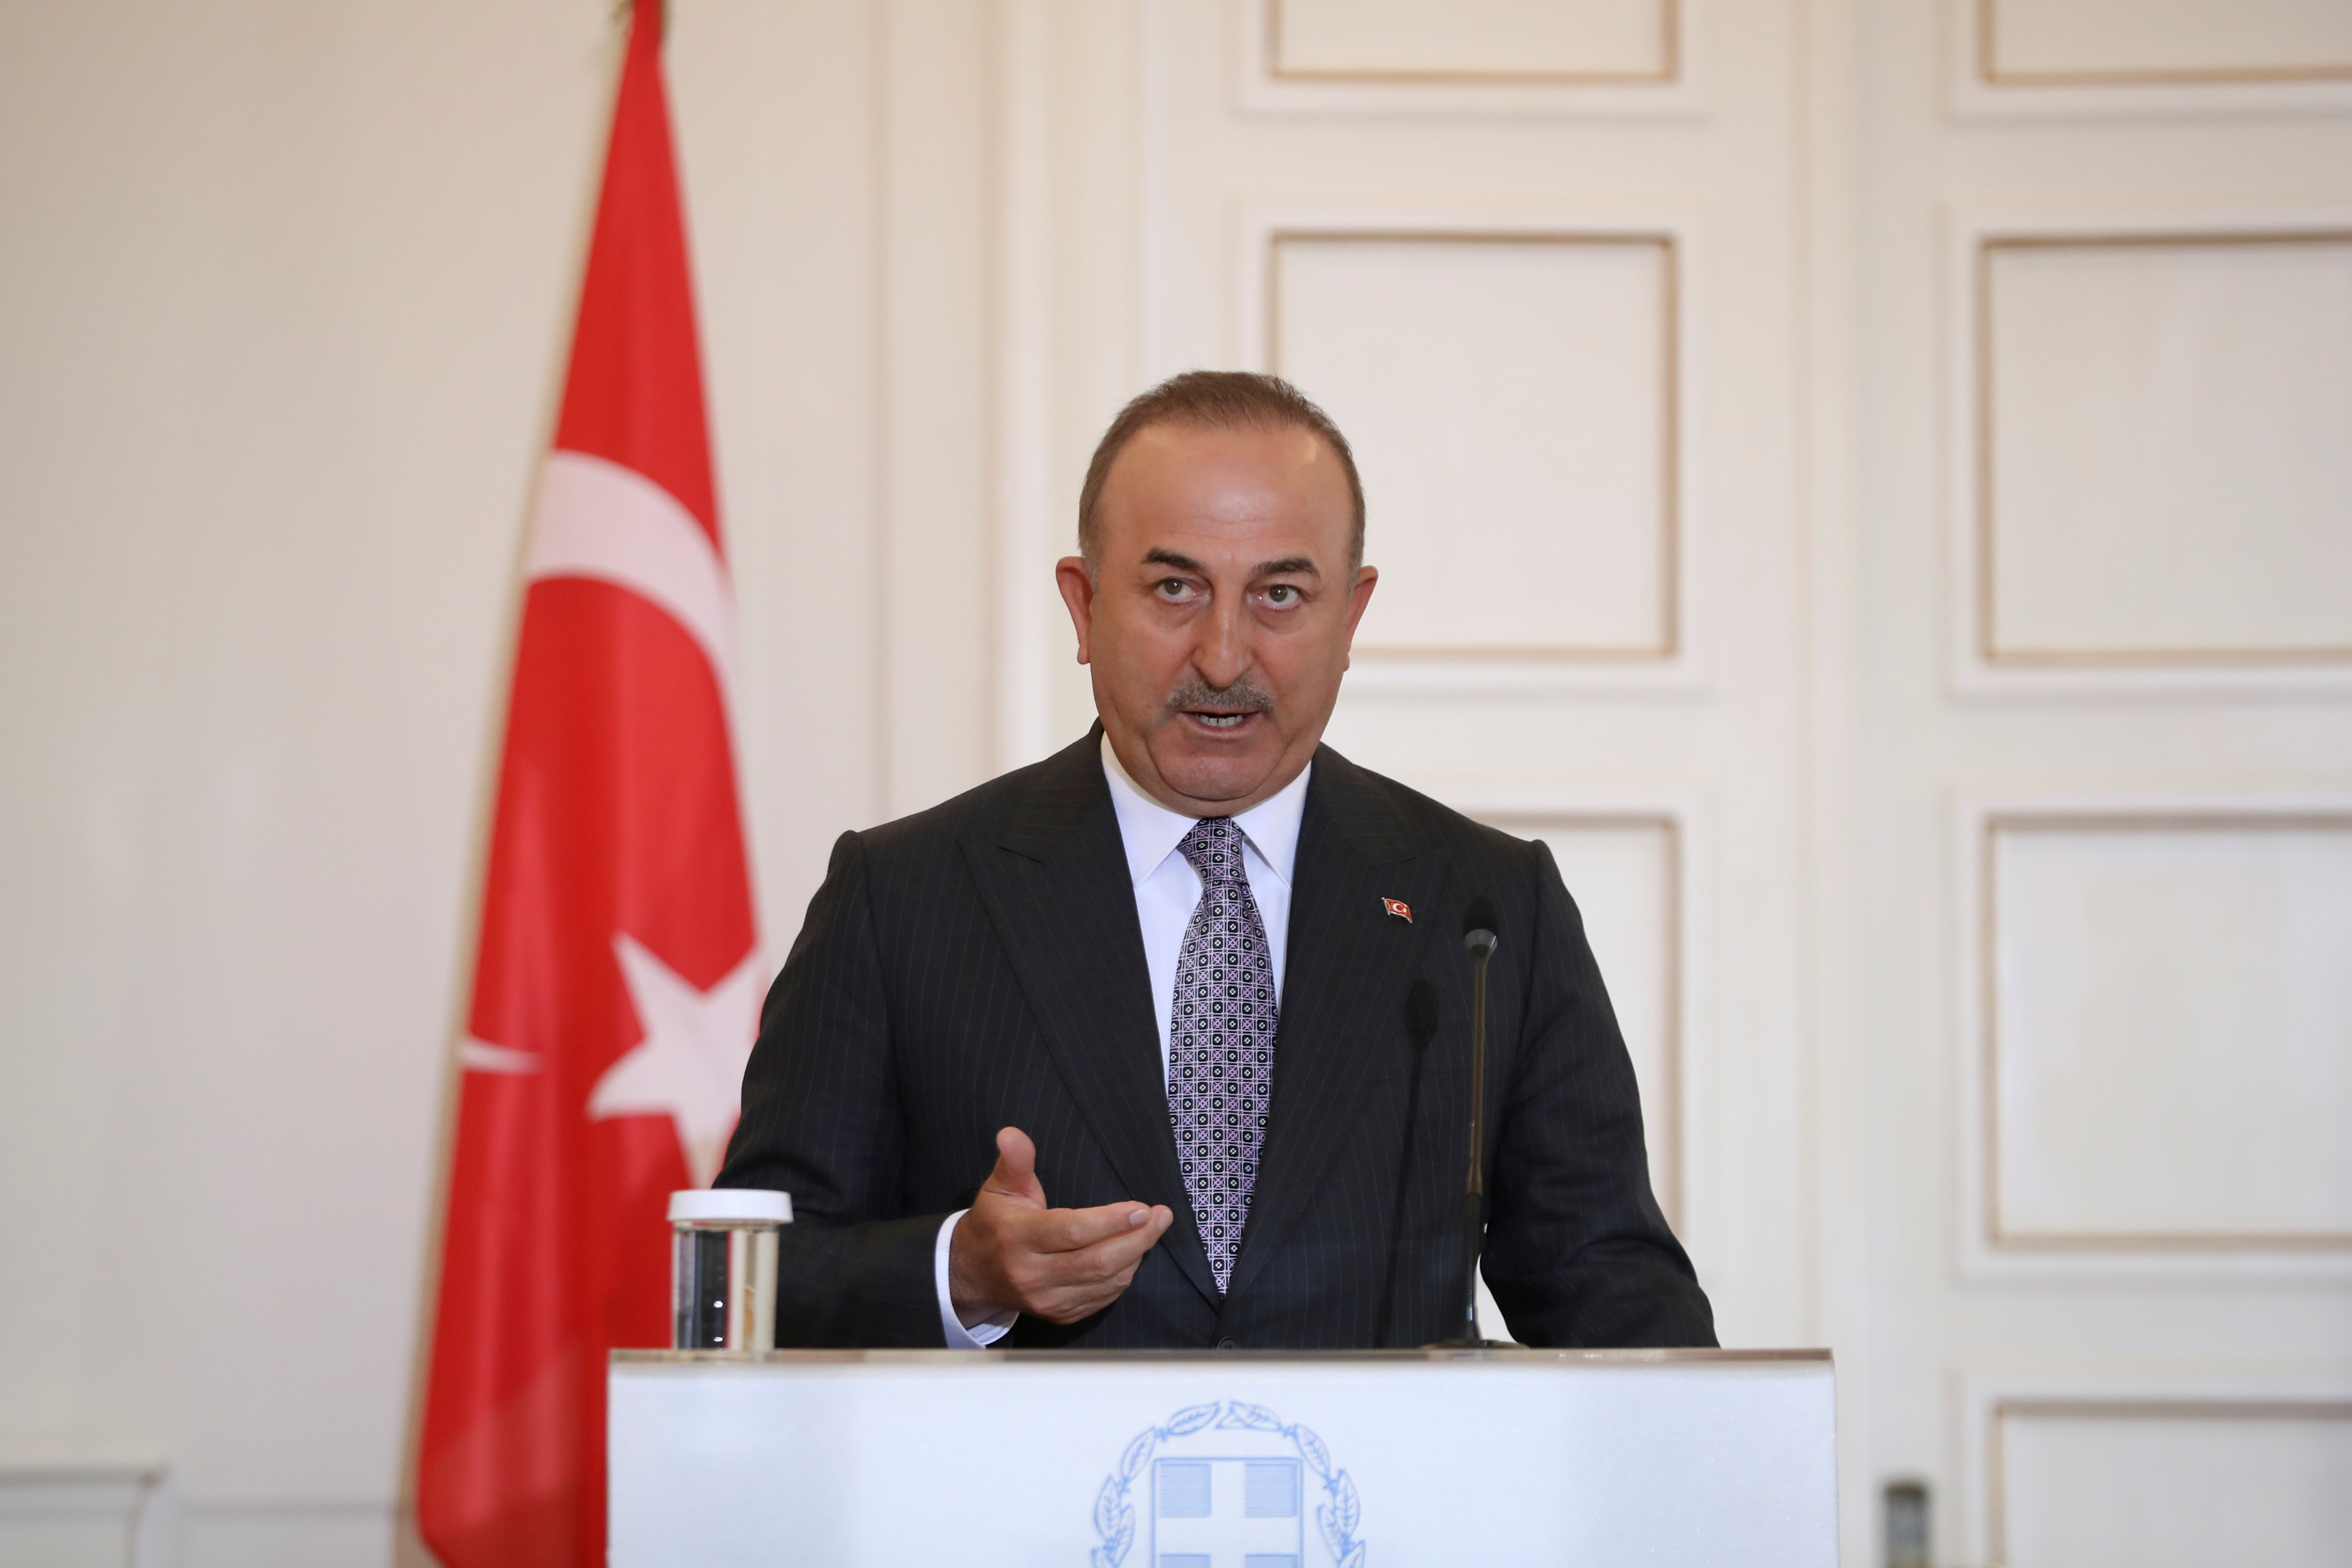 Turkish Foreign Minister Mevlut Cavusoglu speaks during a joint news conference with his Greek counterpart Nikos Dendias at the Ministry of Foreign Affairs in Athens, Greece, May 31, 2021. REUTERS/Costas Baltas